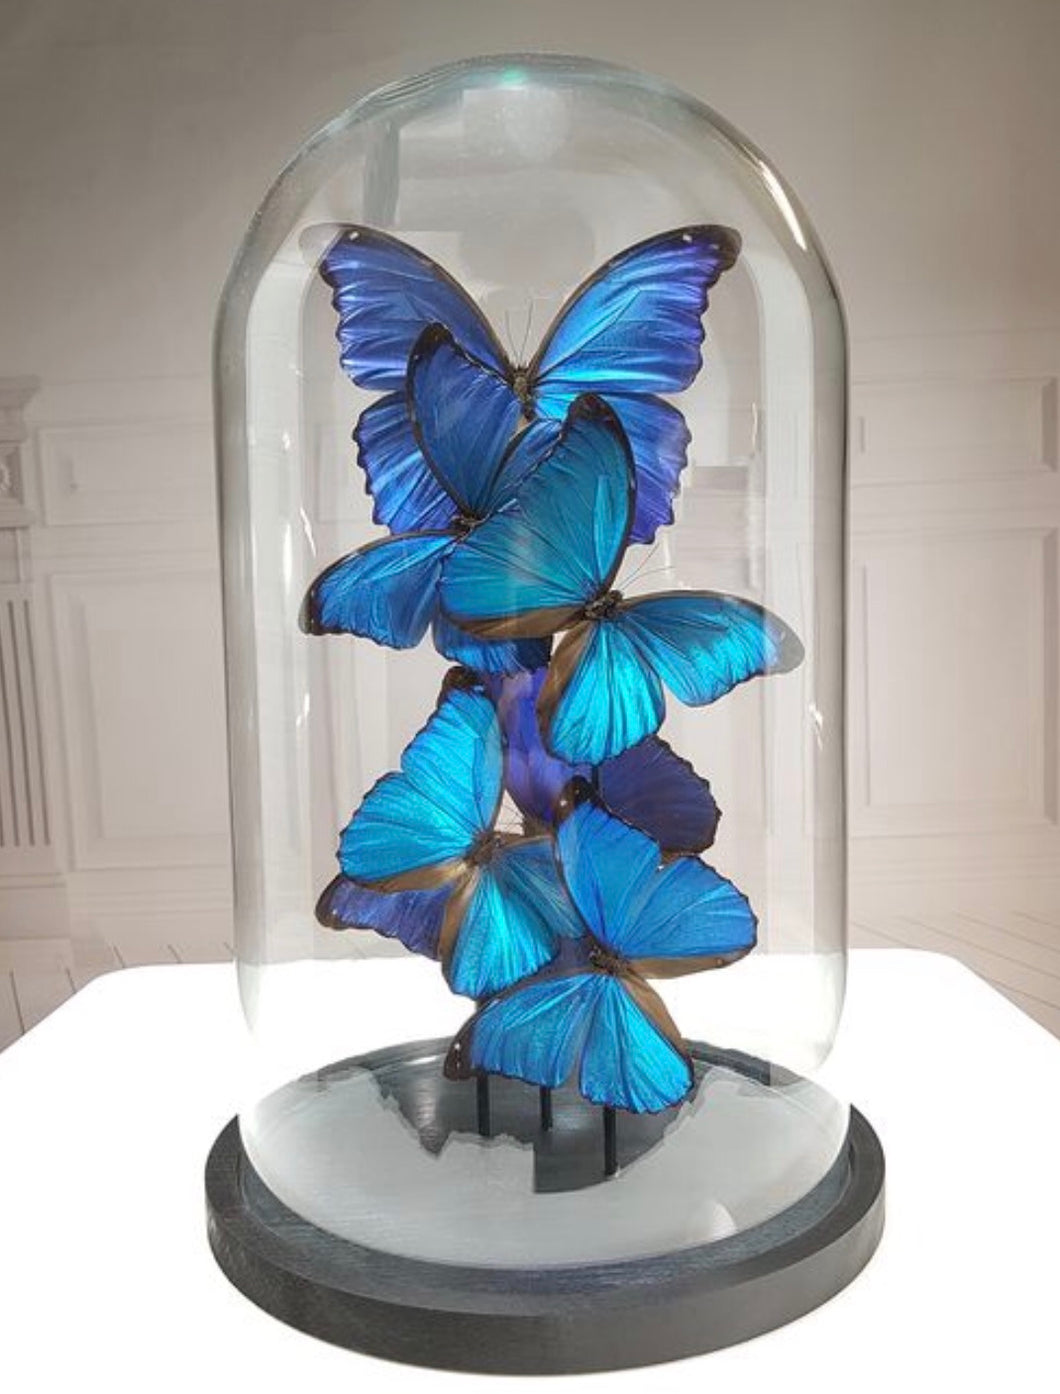 Blue empire butterflies under a glass dome